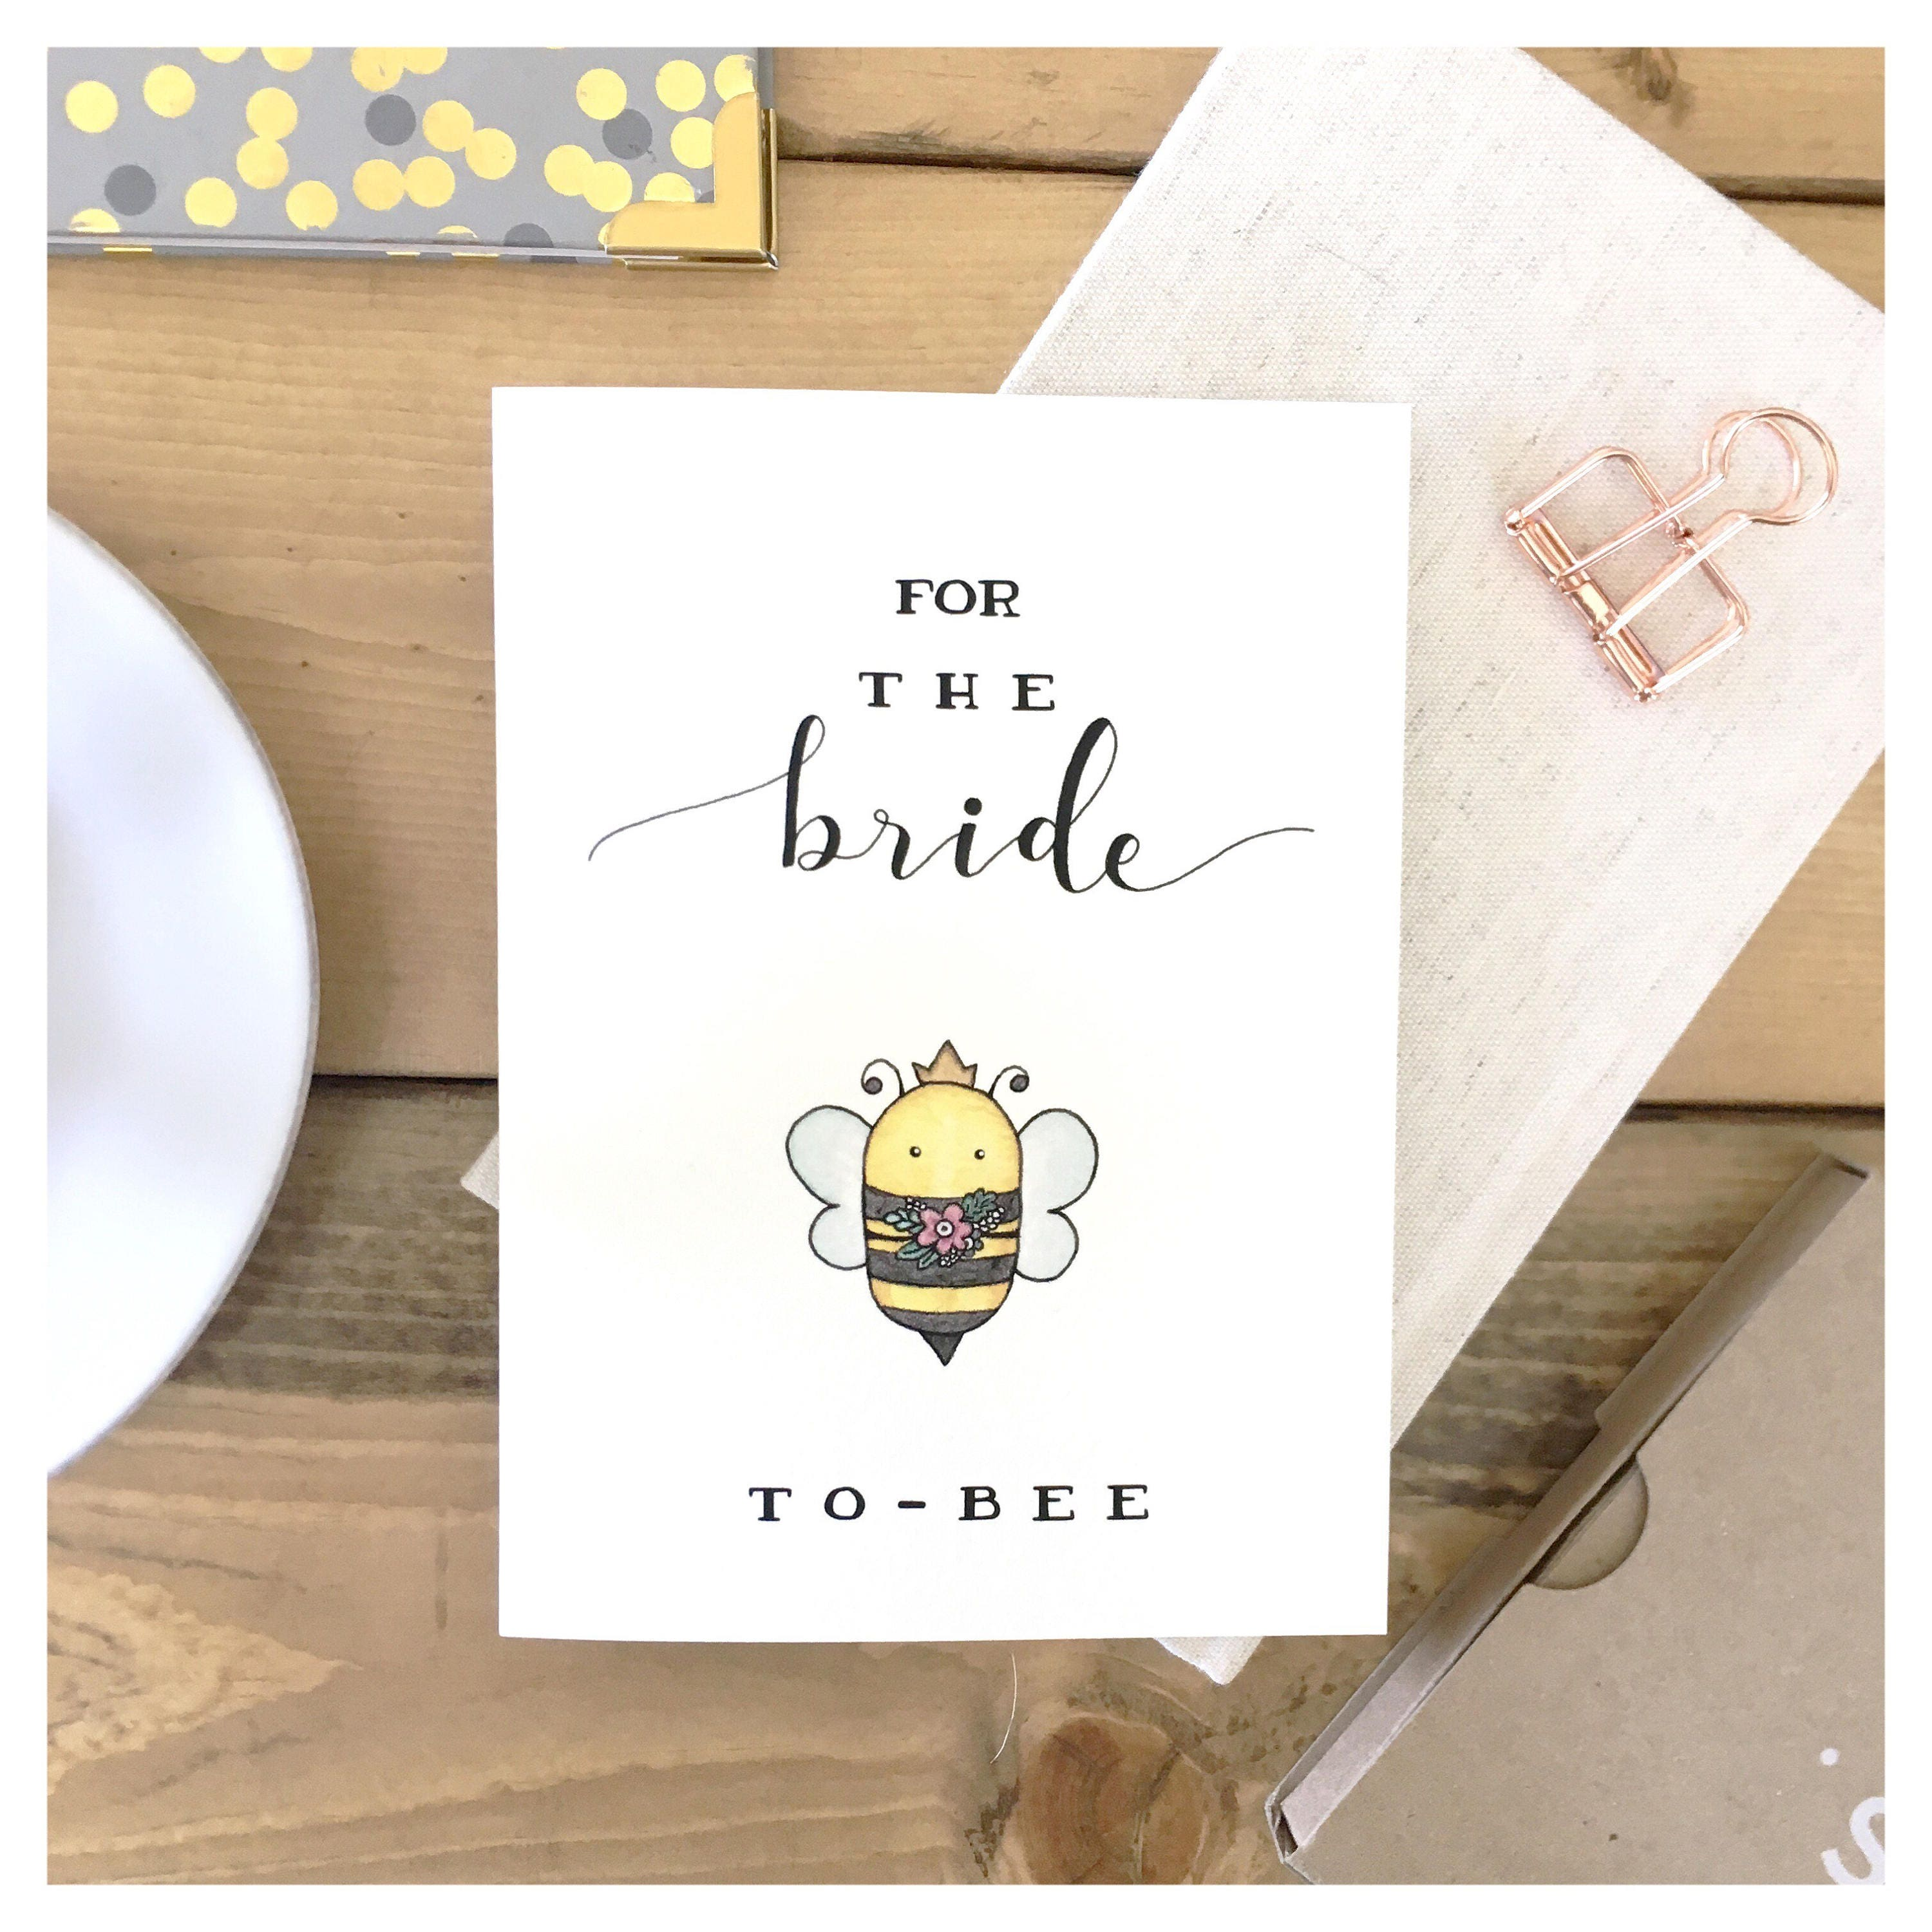 bride to be card for bride wedding card bridal shower card funny wedding card cute bridal shower card cute wedding card bridal card